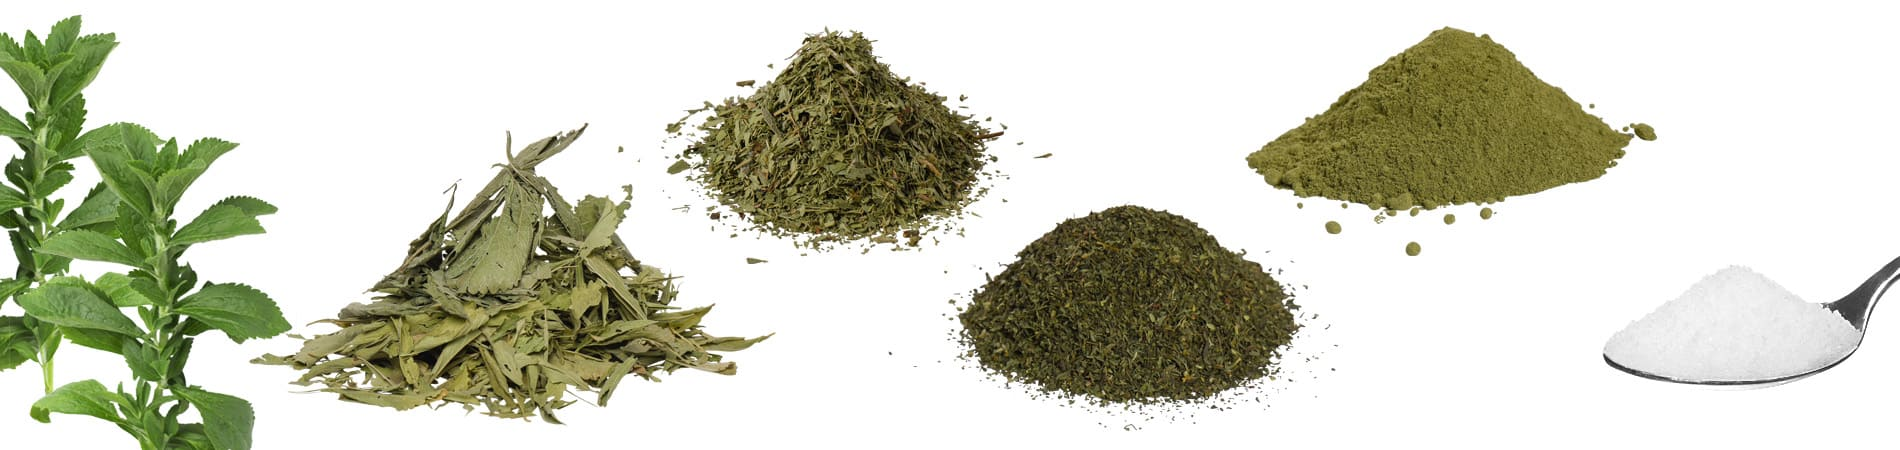 High quality plant-based Stevia raw materials and extracts